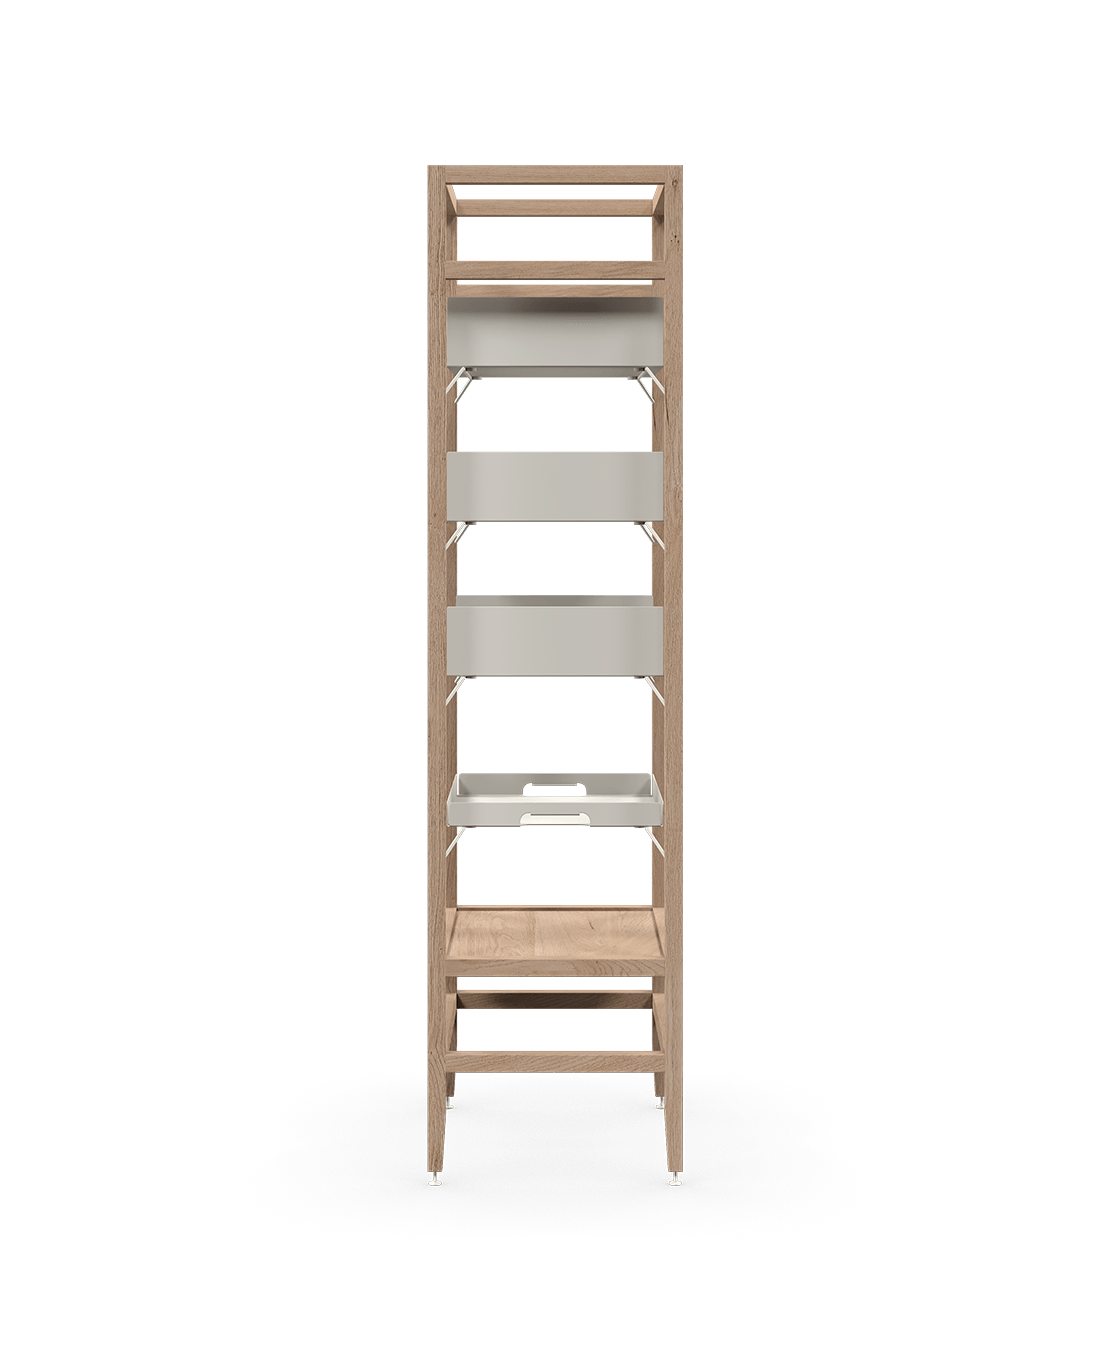 for up oak arrangement bookcase above at shelves square dsc the an master top storage four case raised revolving tiers sale furniture large f with pieces bookcases off id